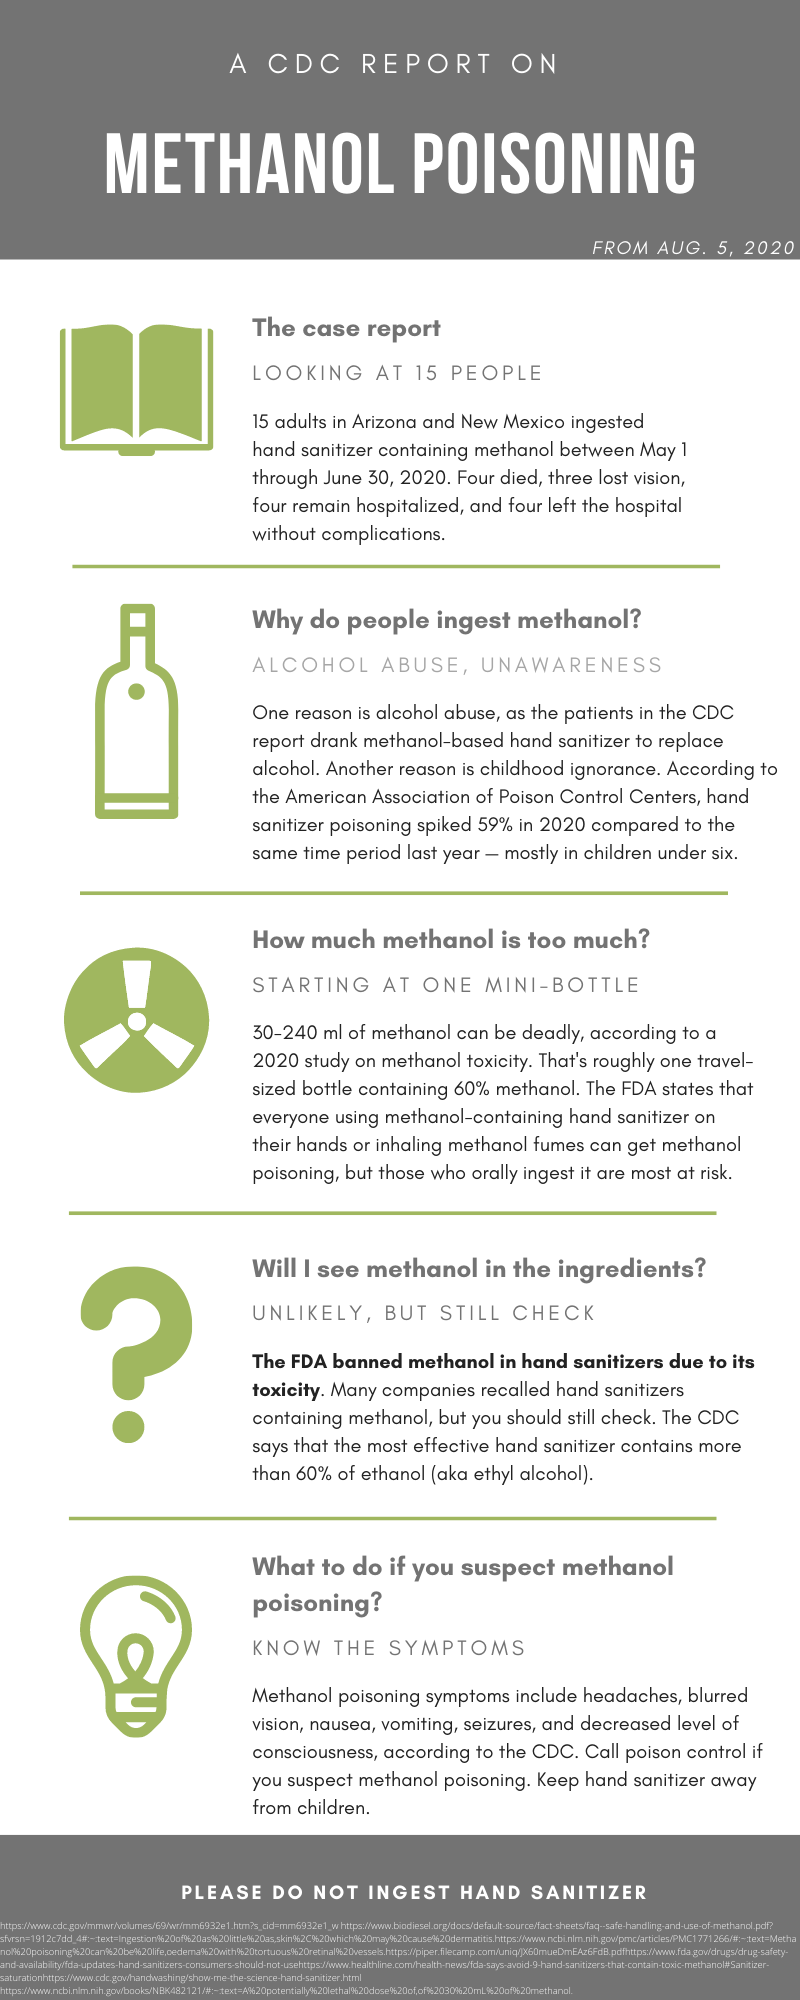 infographic of methanol poisoning case report